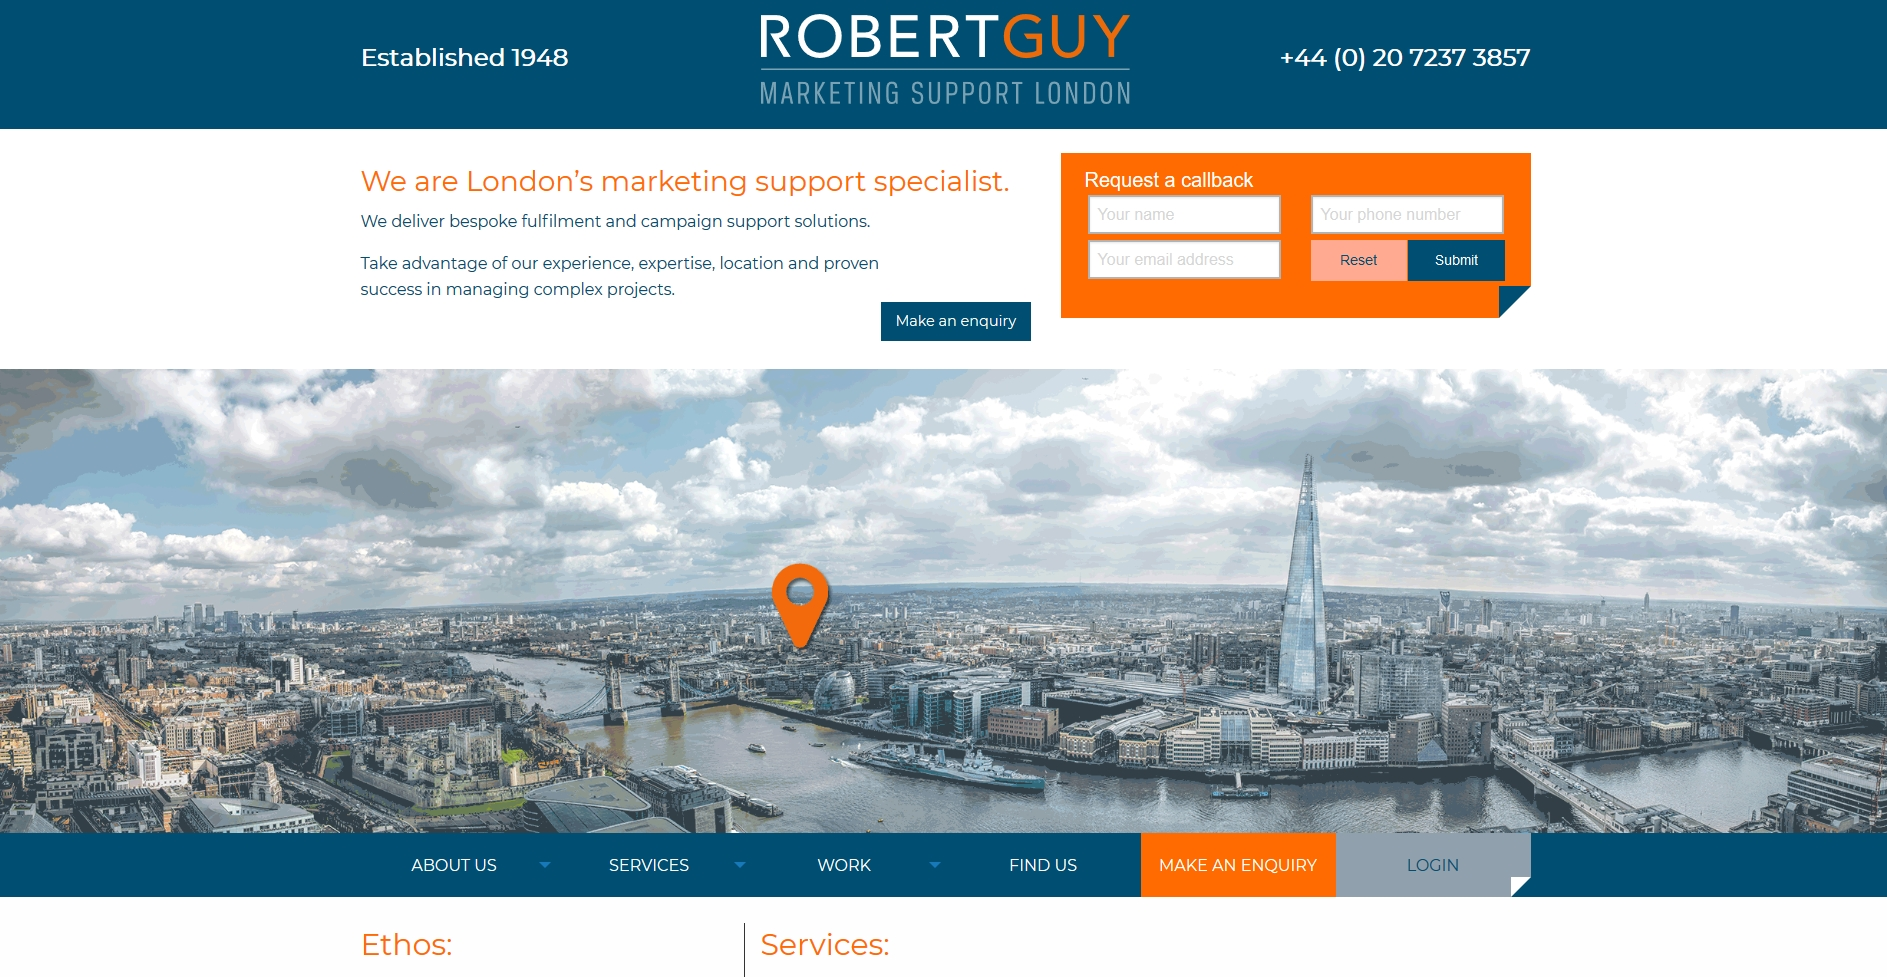 robertguy.co.uk